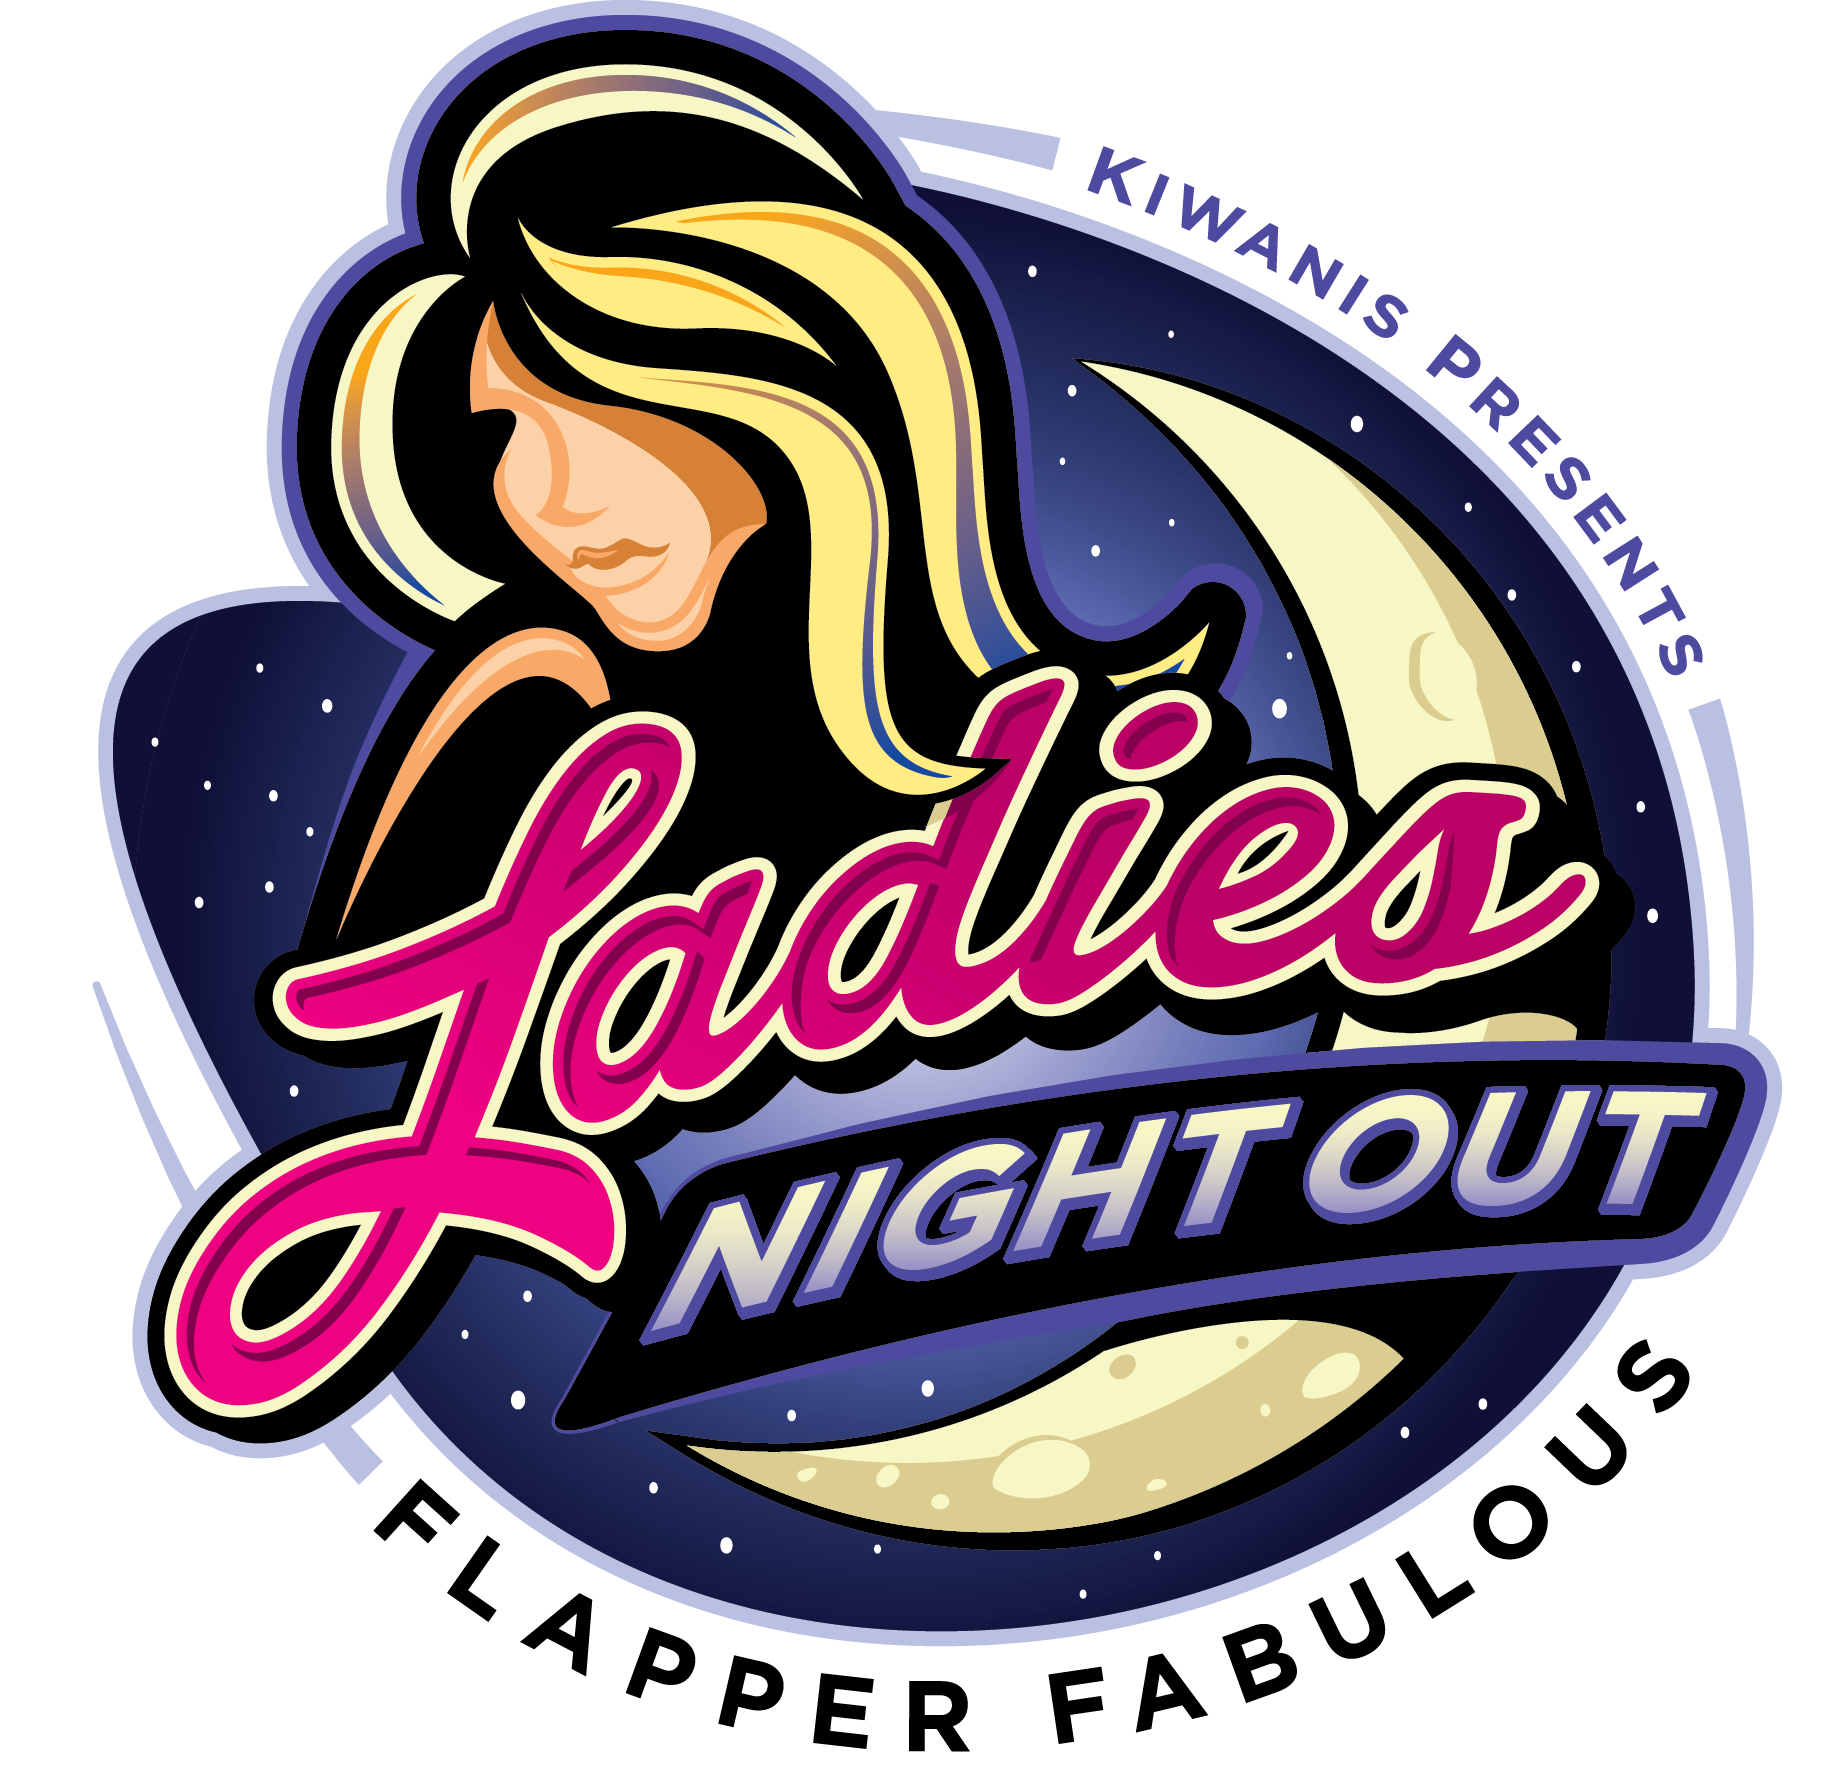 Great Falls Kiwanis Ladies Night Out Event Logo Greatfalls Kiwanis Ladiesnight Ladiesnightout